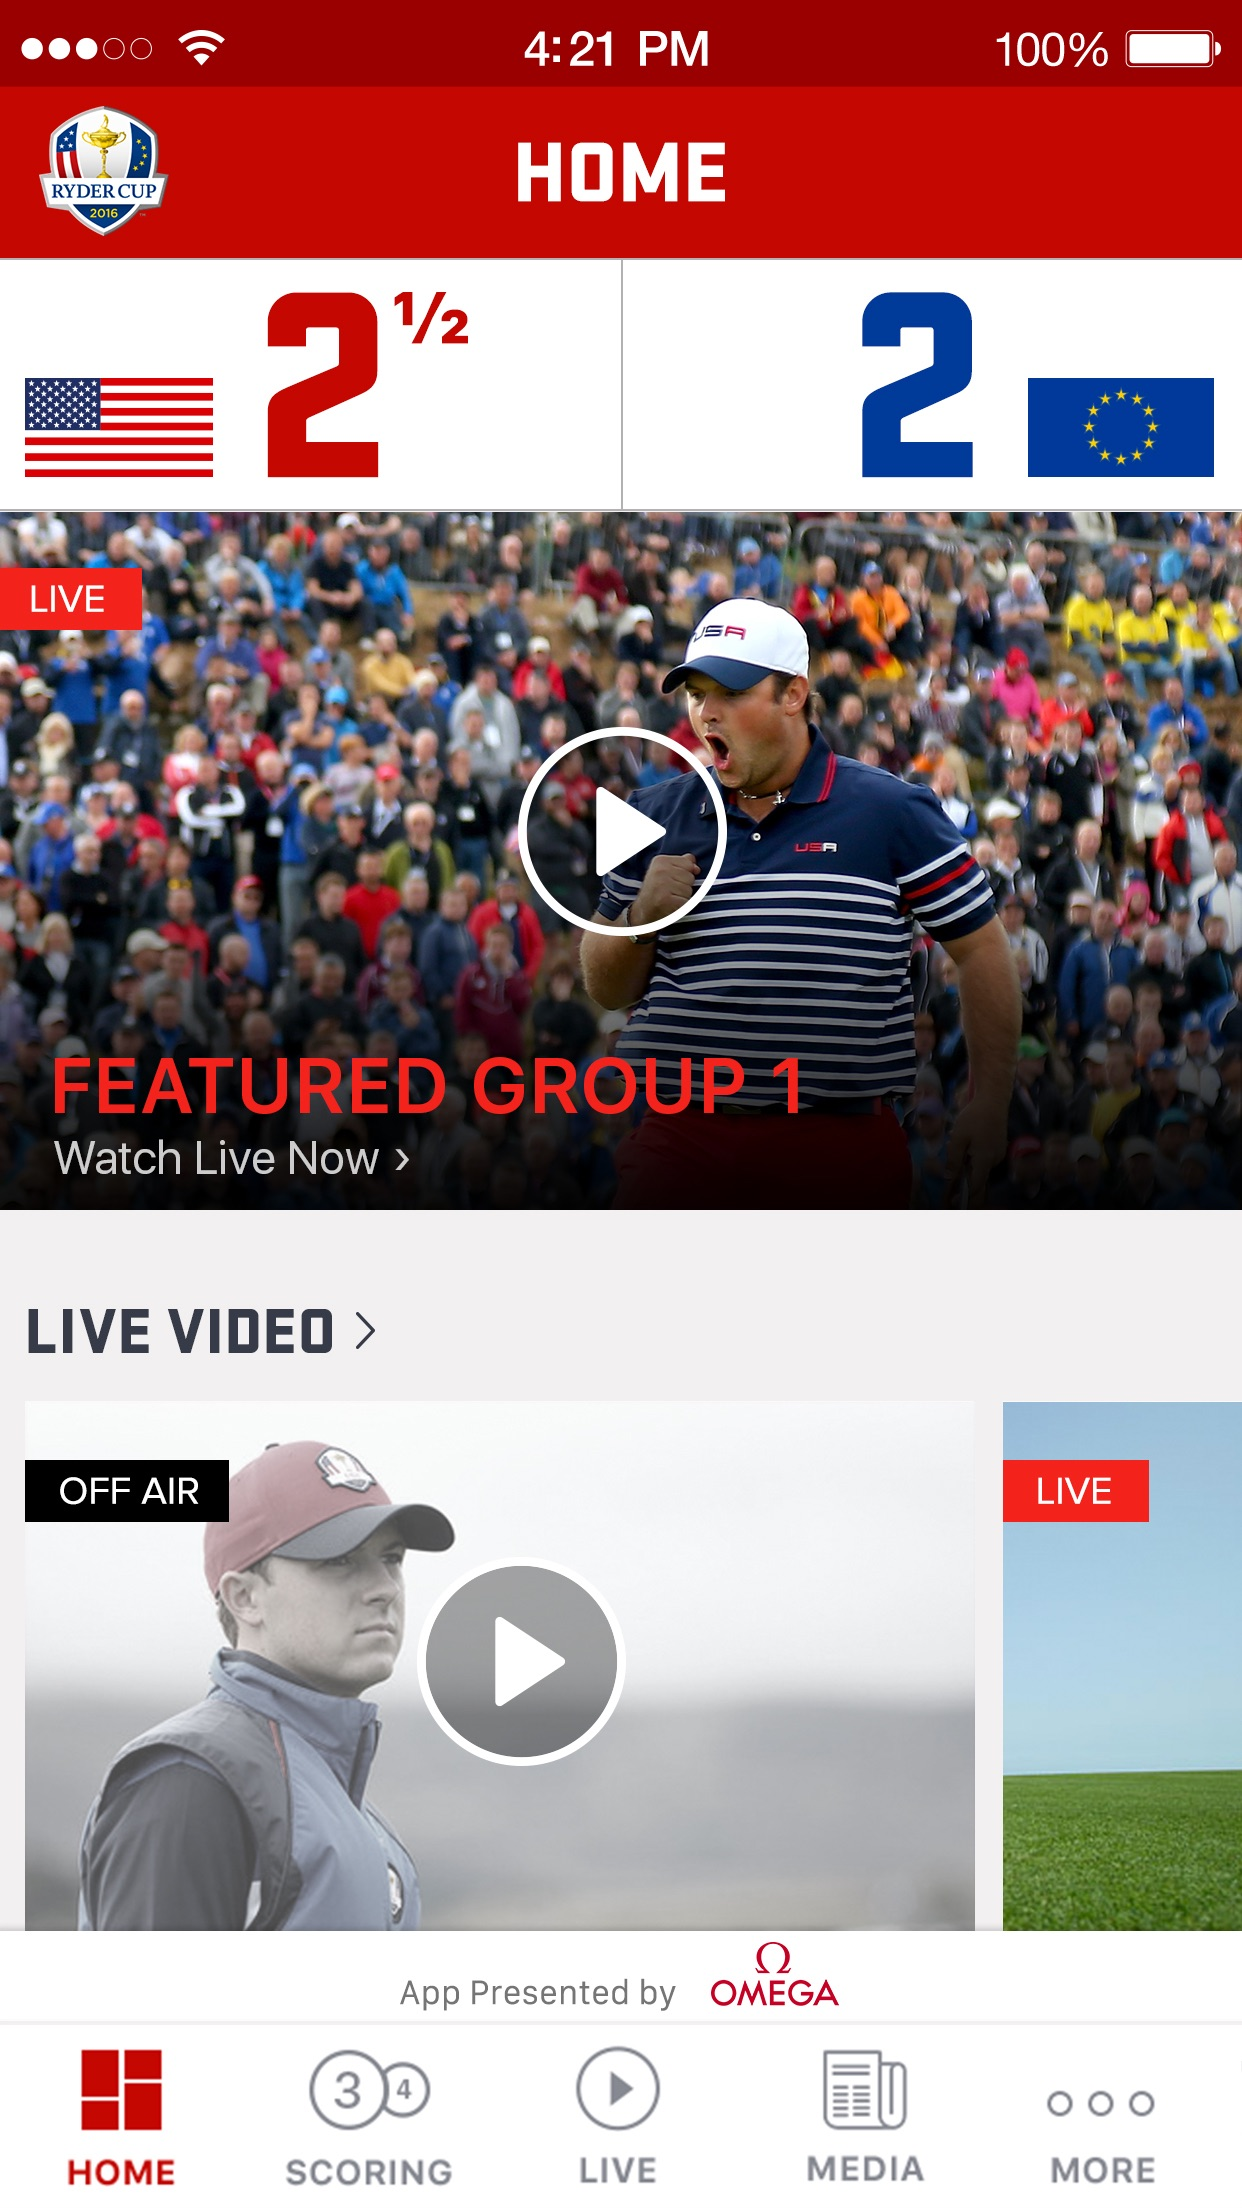 Ryder Cup 2016 – Hazeltine National Golf Club Screenshot